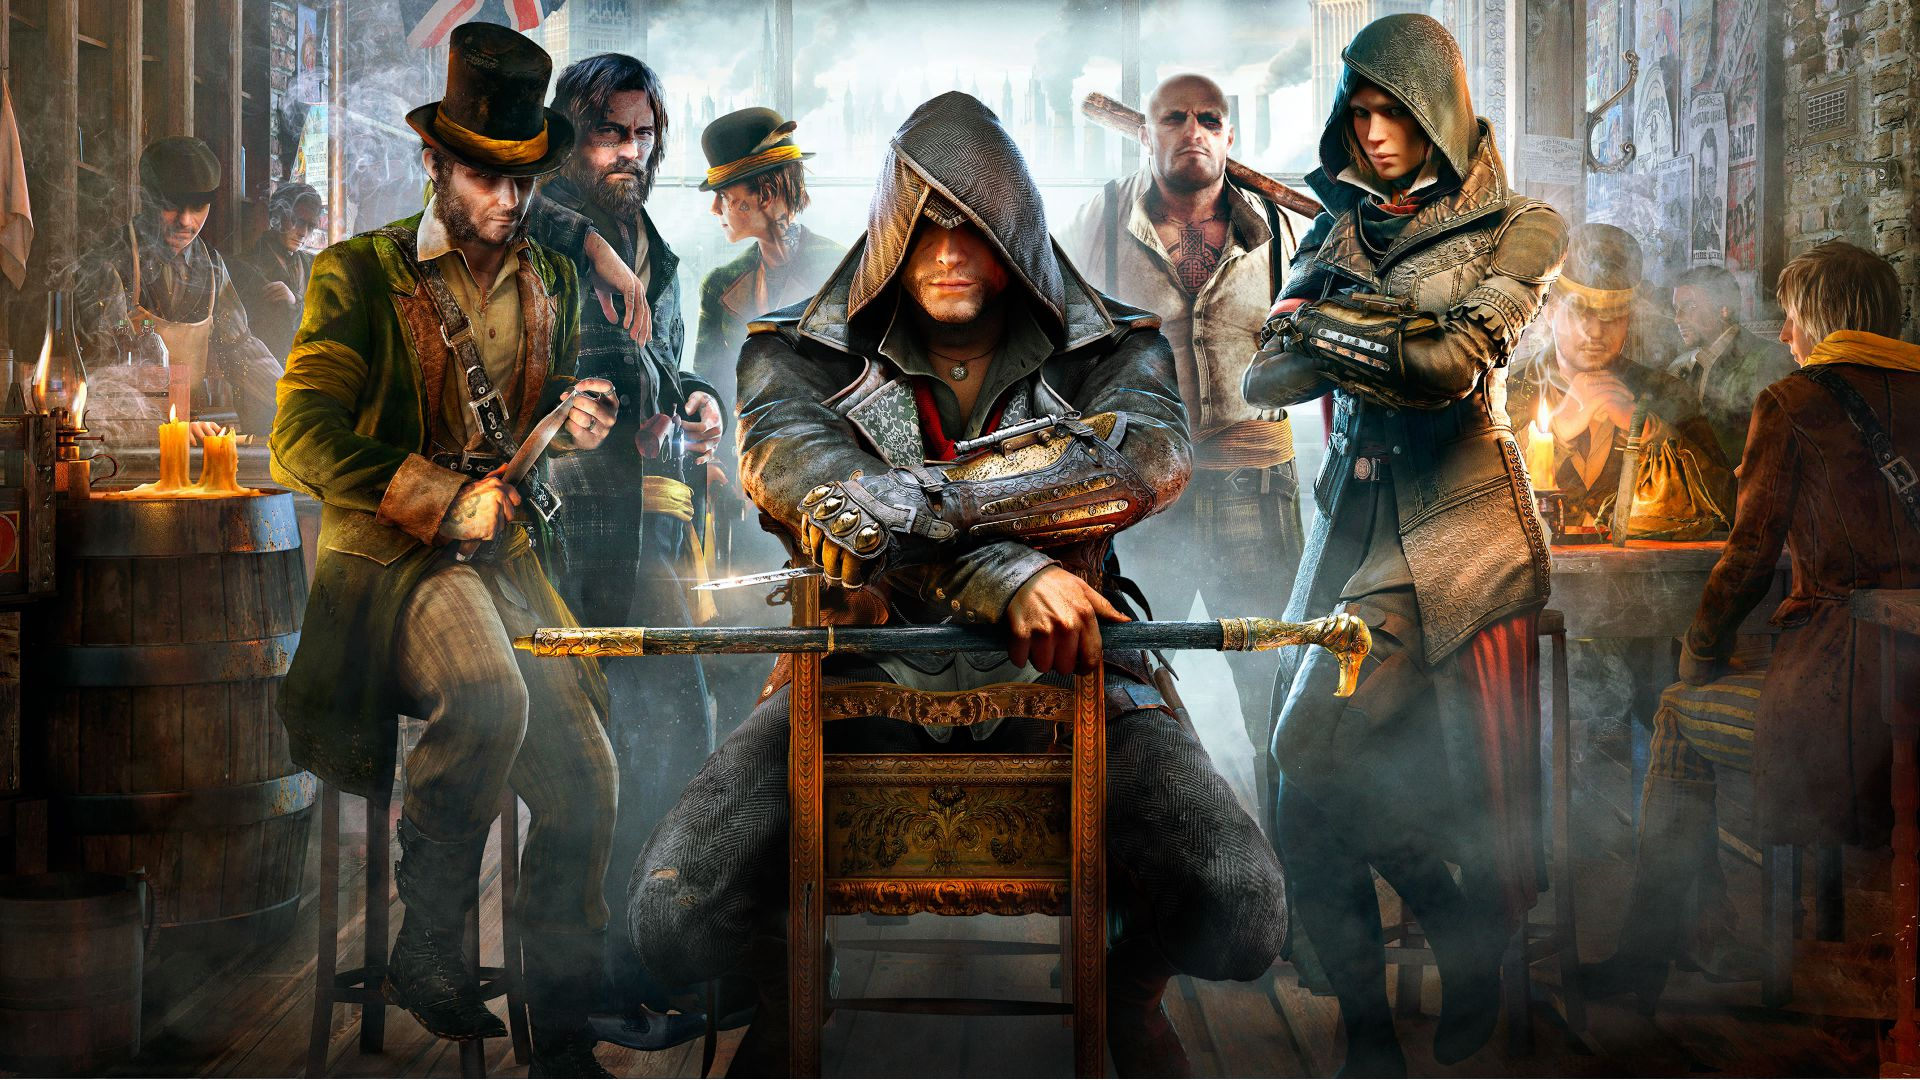 Assassin's Creed Синдикат, Лучшие игры 2015, игра, ПК, PS4, Xbox one, Assassin's Creed: Syndicate, Best Games 2015, game, open world, PC, PS4, Xbox one (horizontal)